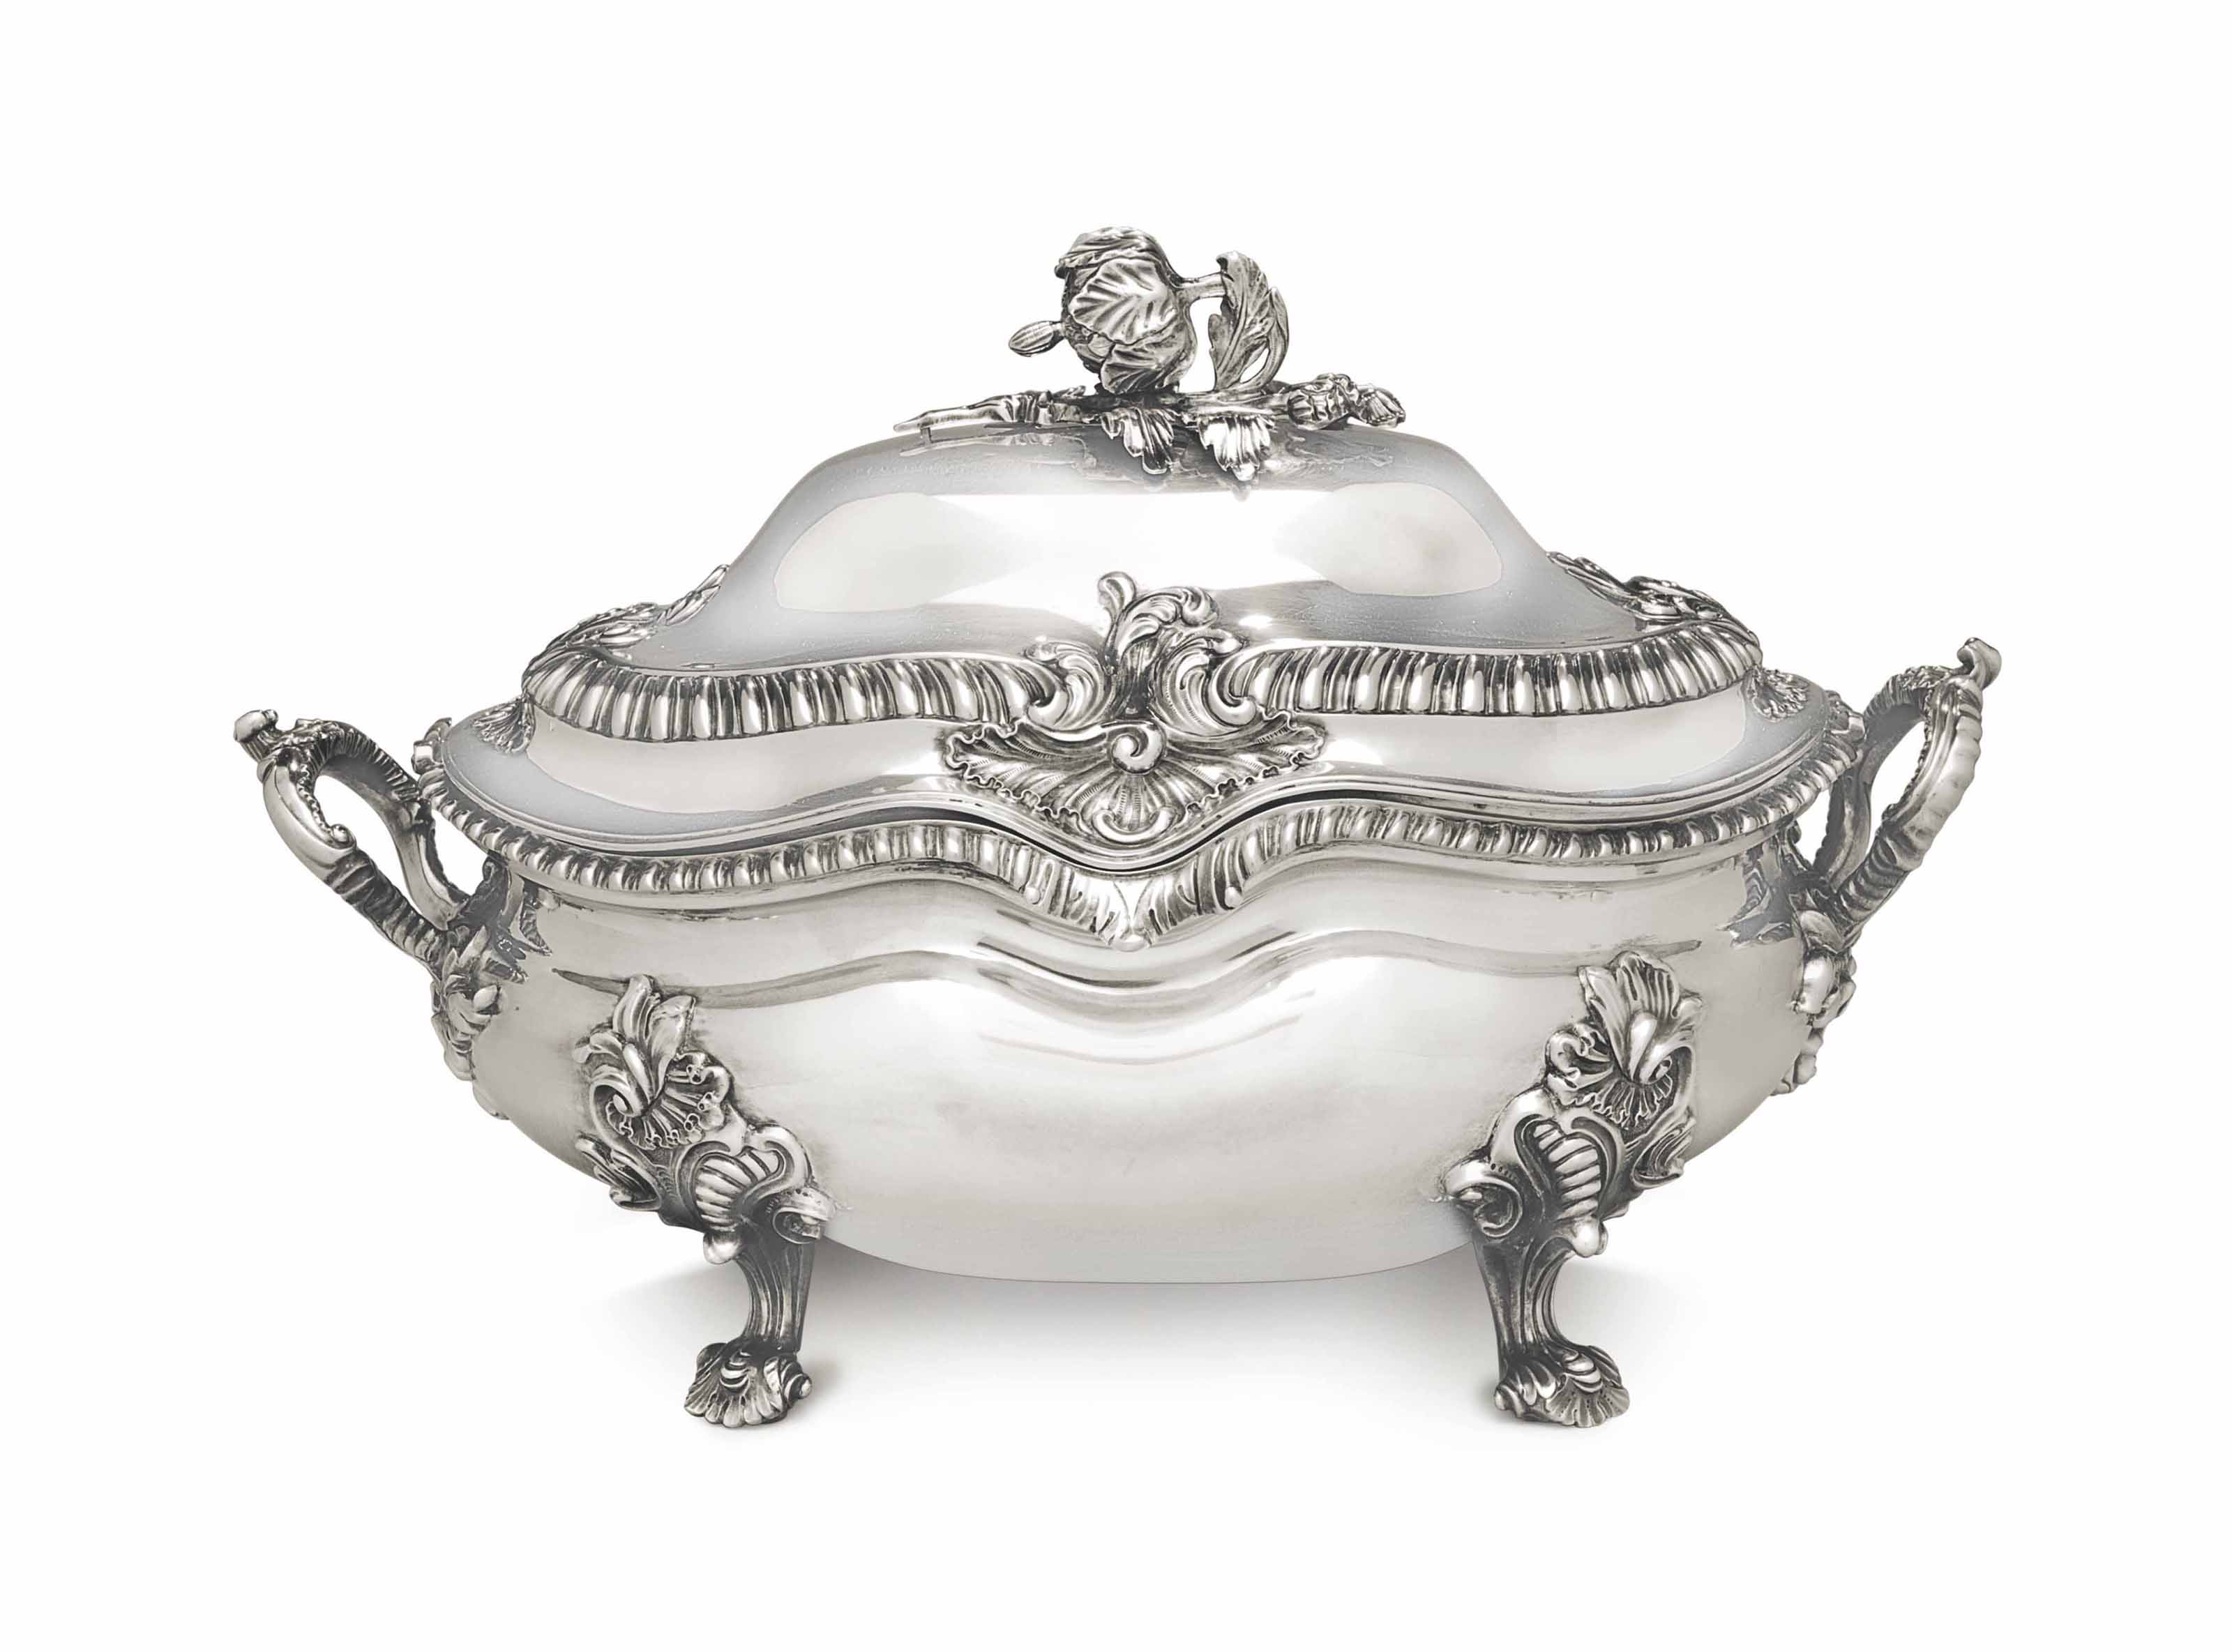 A VICTORIAN SILVER SOUP TUREEN AND COVER